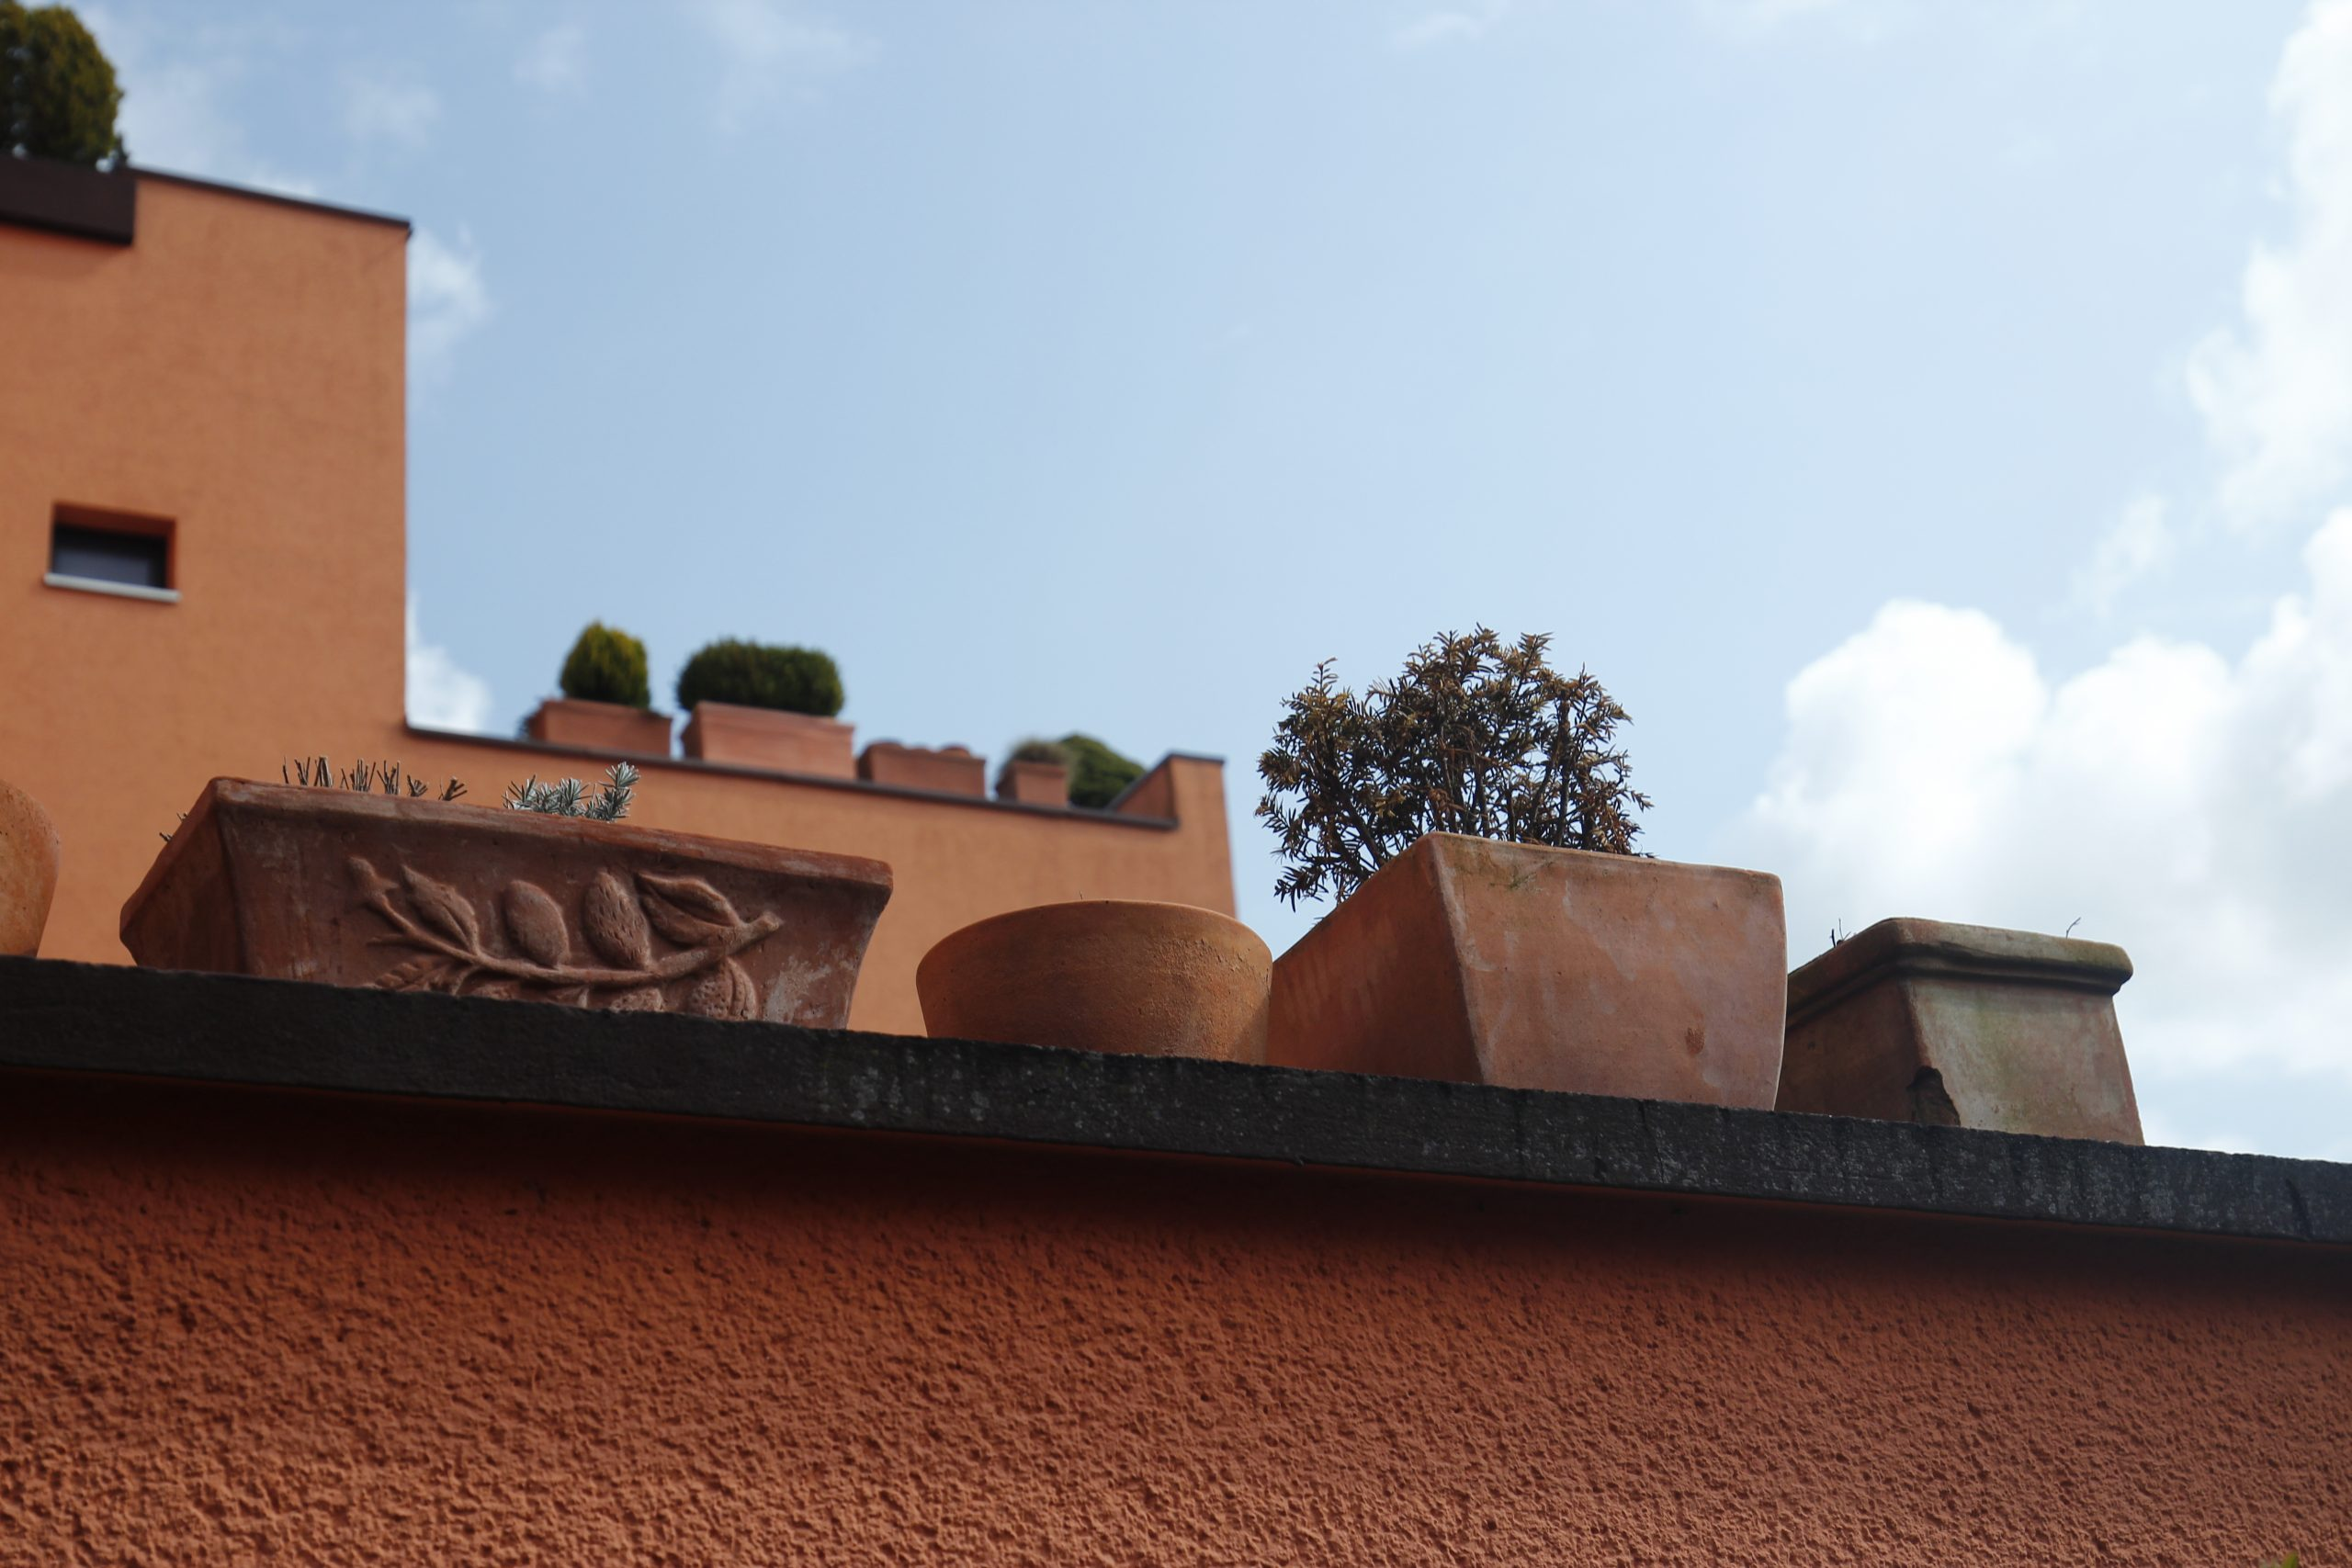 """Terracotta flower potts stand on a wall. The """"Finnstadt"""" settlement complex in Dorsten can be seen in the background."""